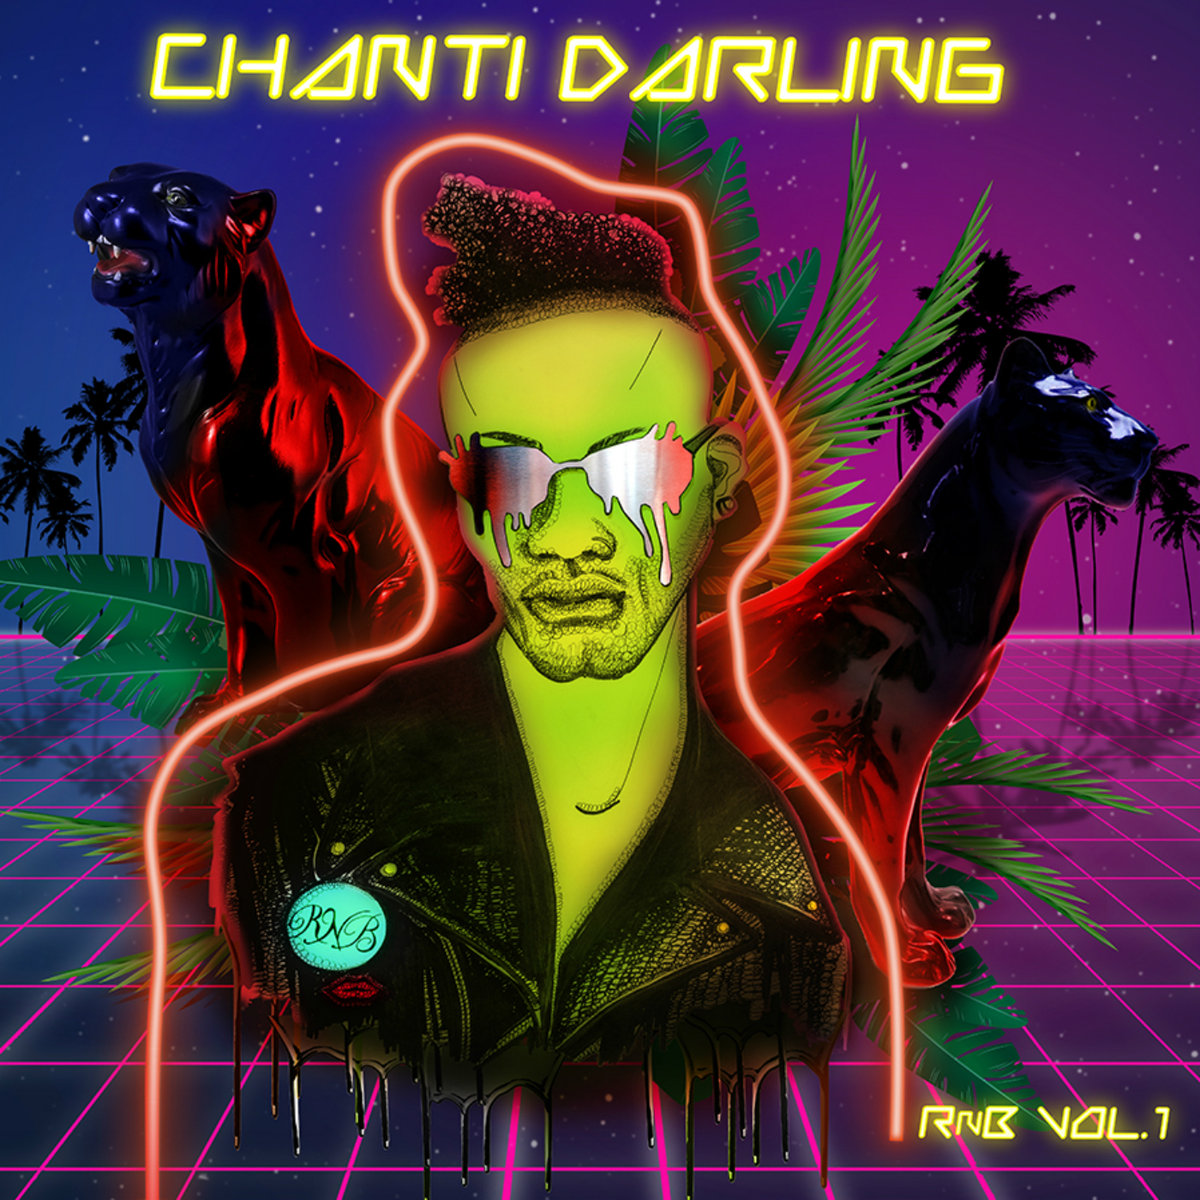 Chanti Darling - RNB VOL.1 - Mixing